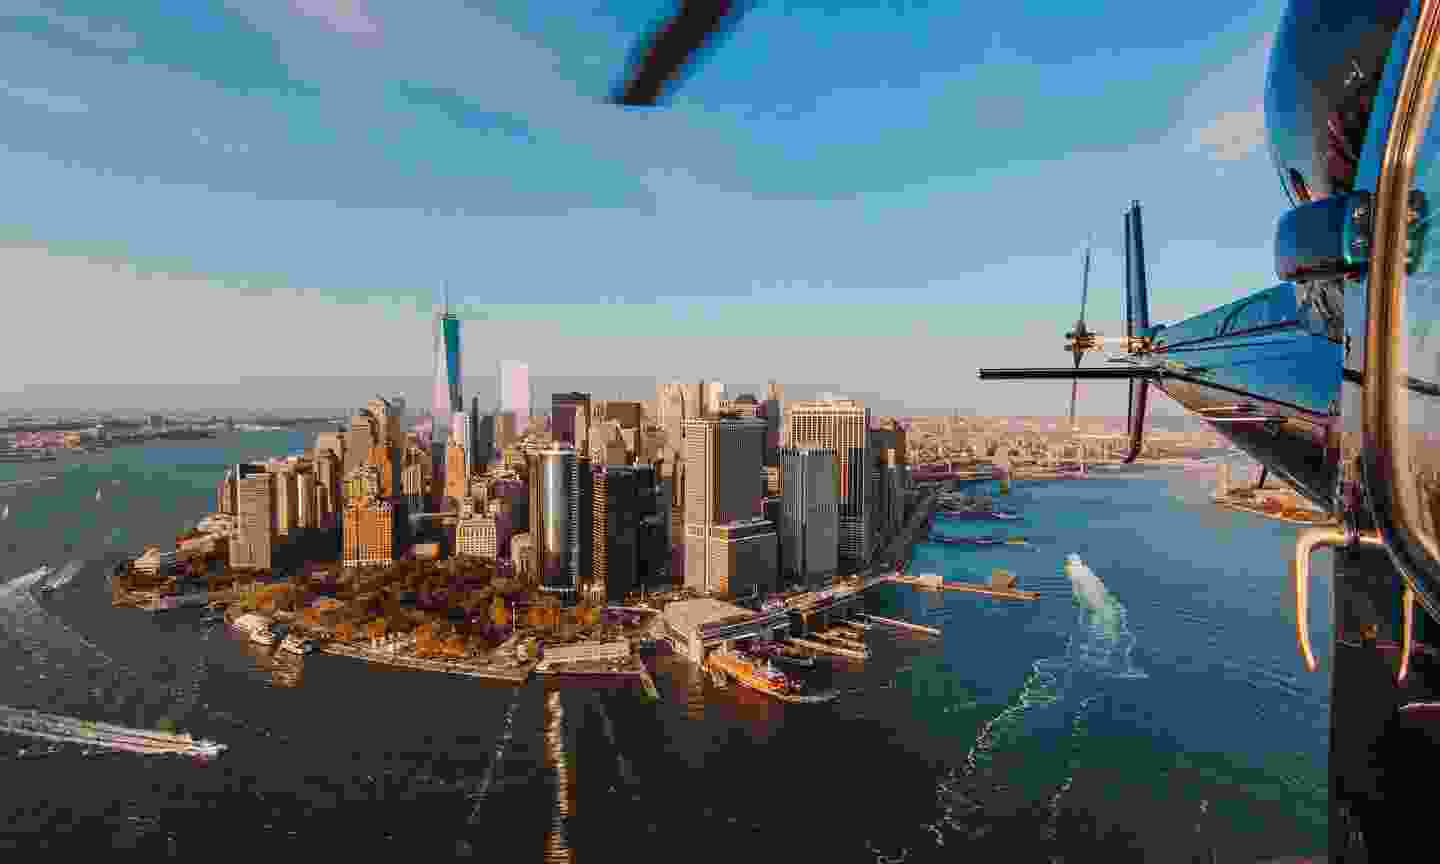 New York City skyline and Hudson River as seen from a helicopter (Shutterstock)